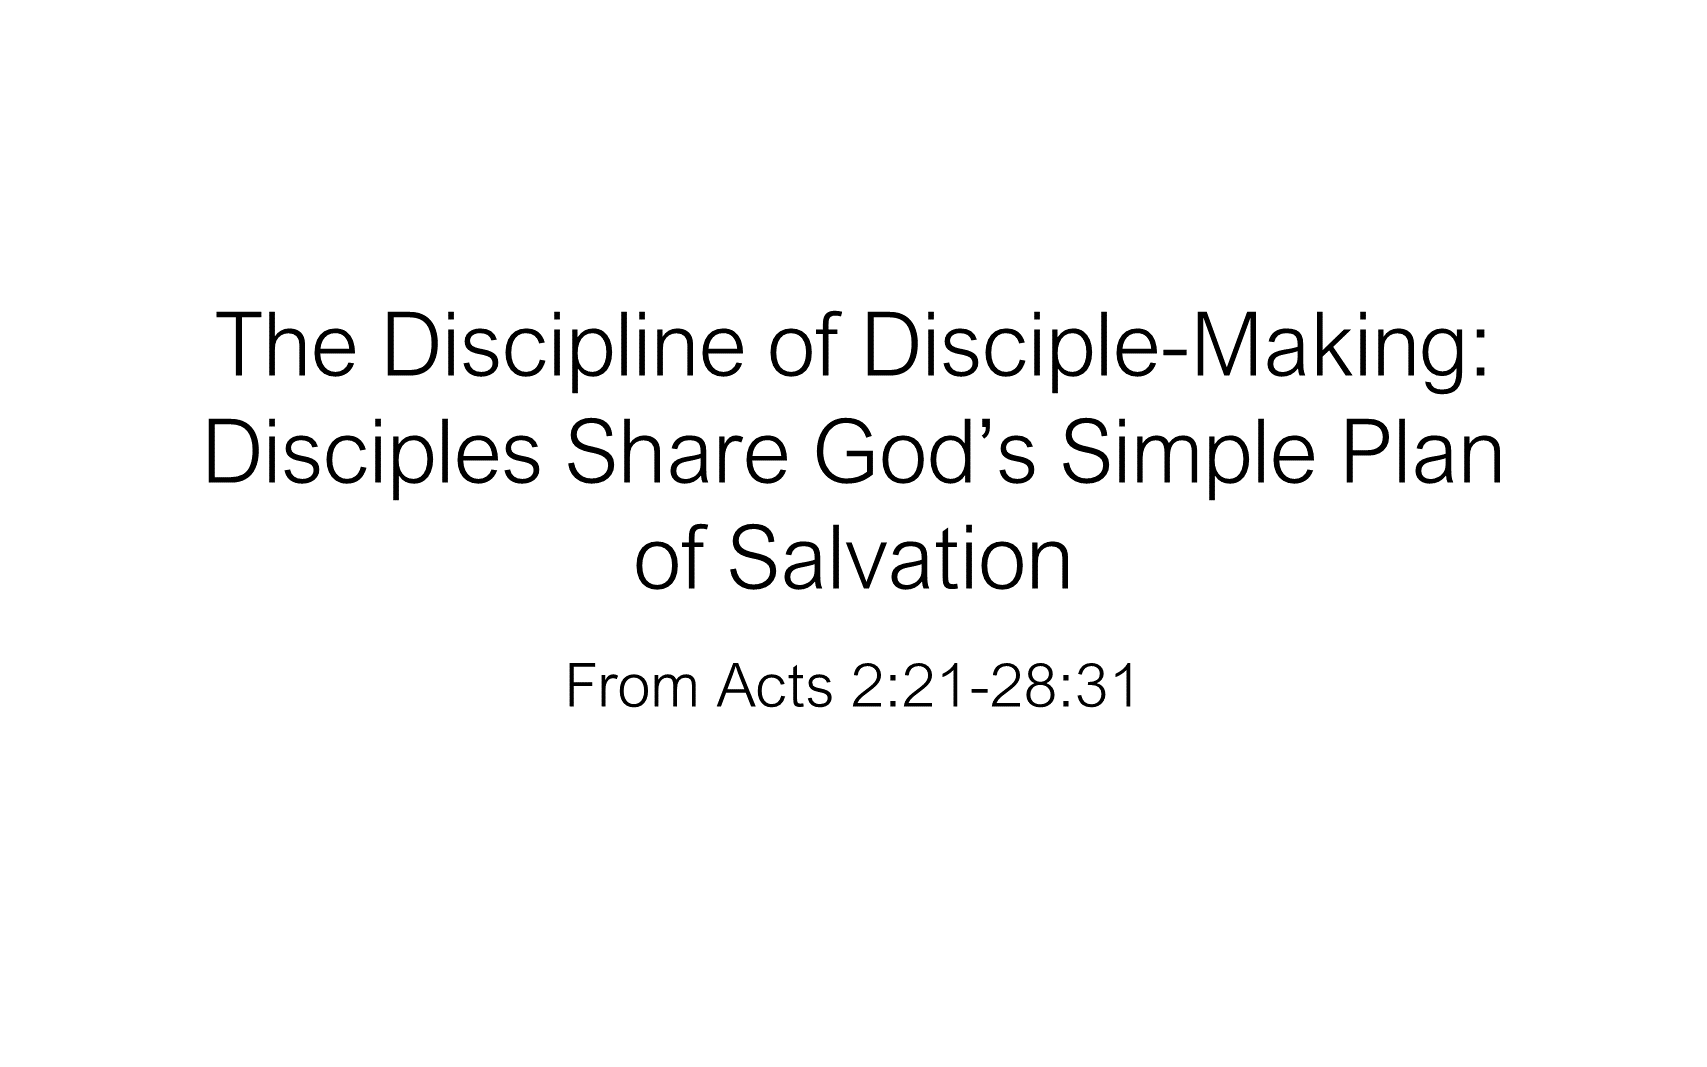 ESH-15 - The Discipline Of Disciple-Making - Disciples Share God's Simple Plan Of Salvation (1)